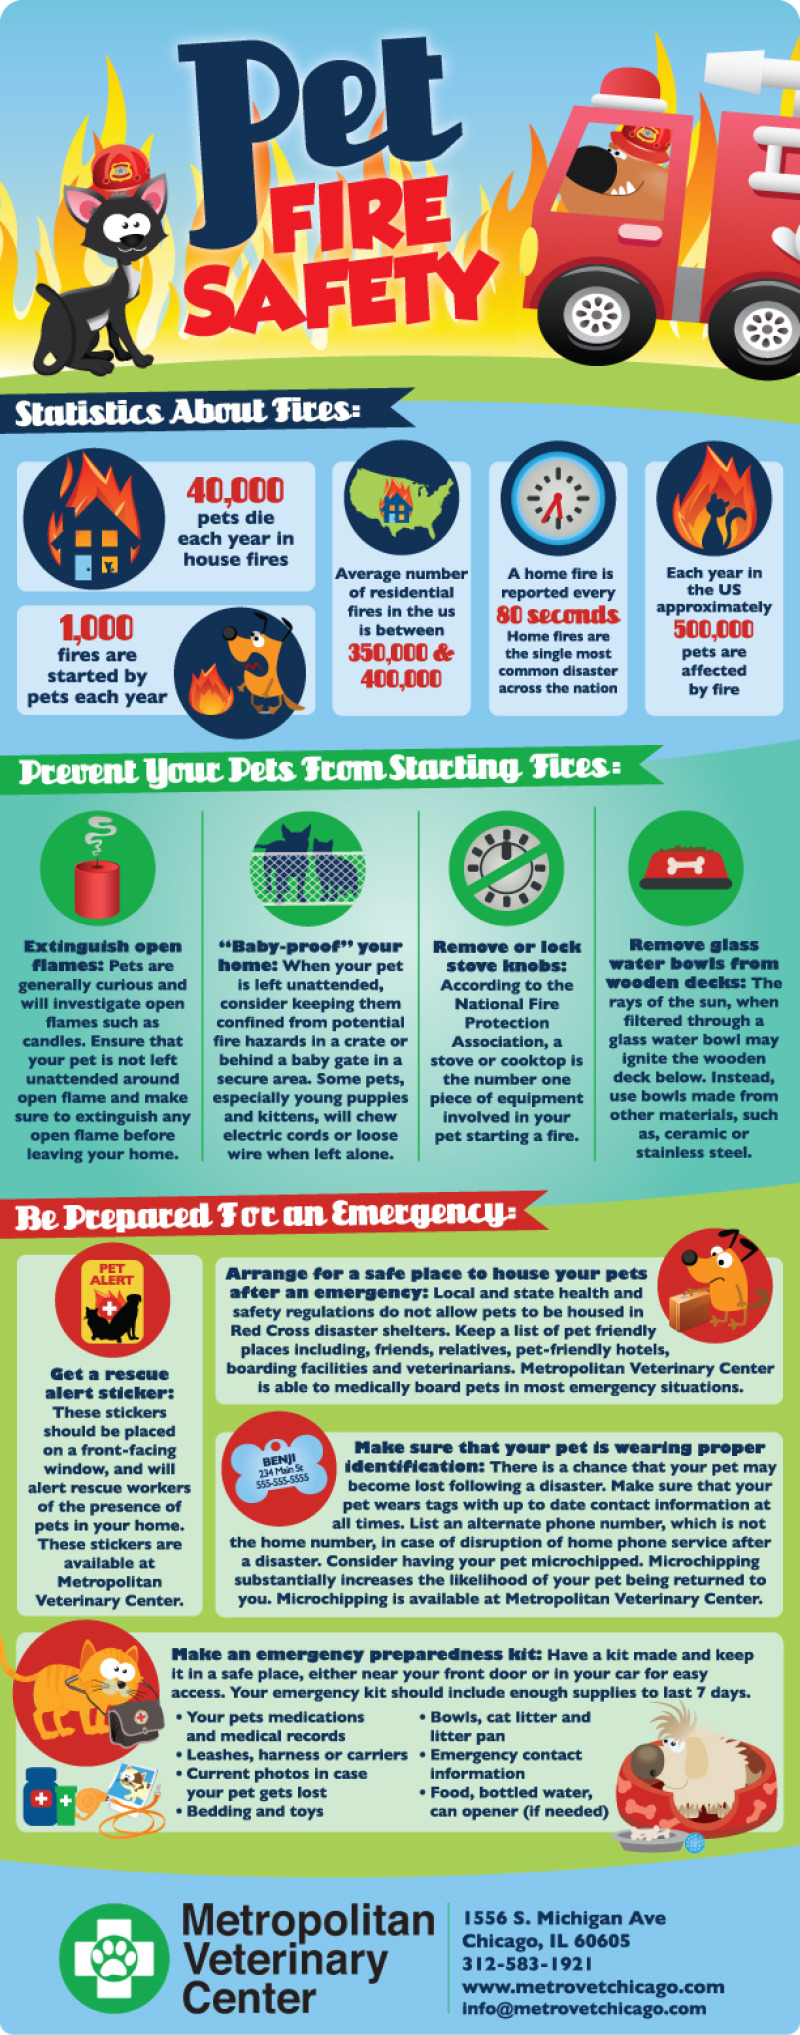 Fire Safety Measures for Pets